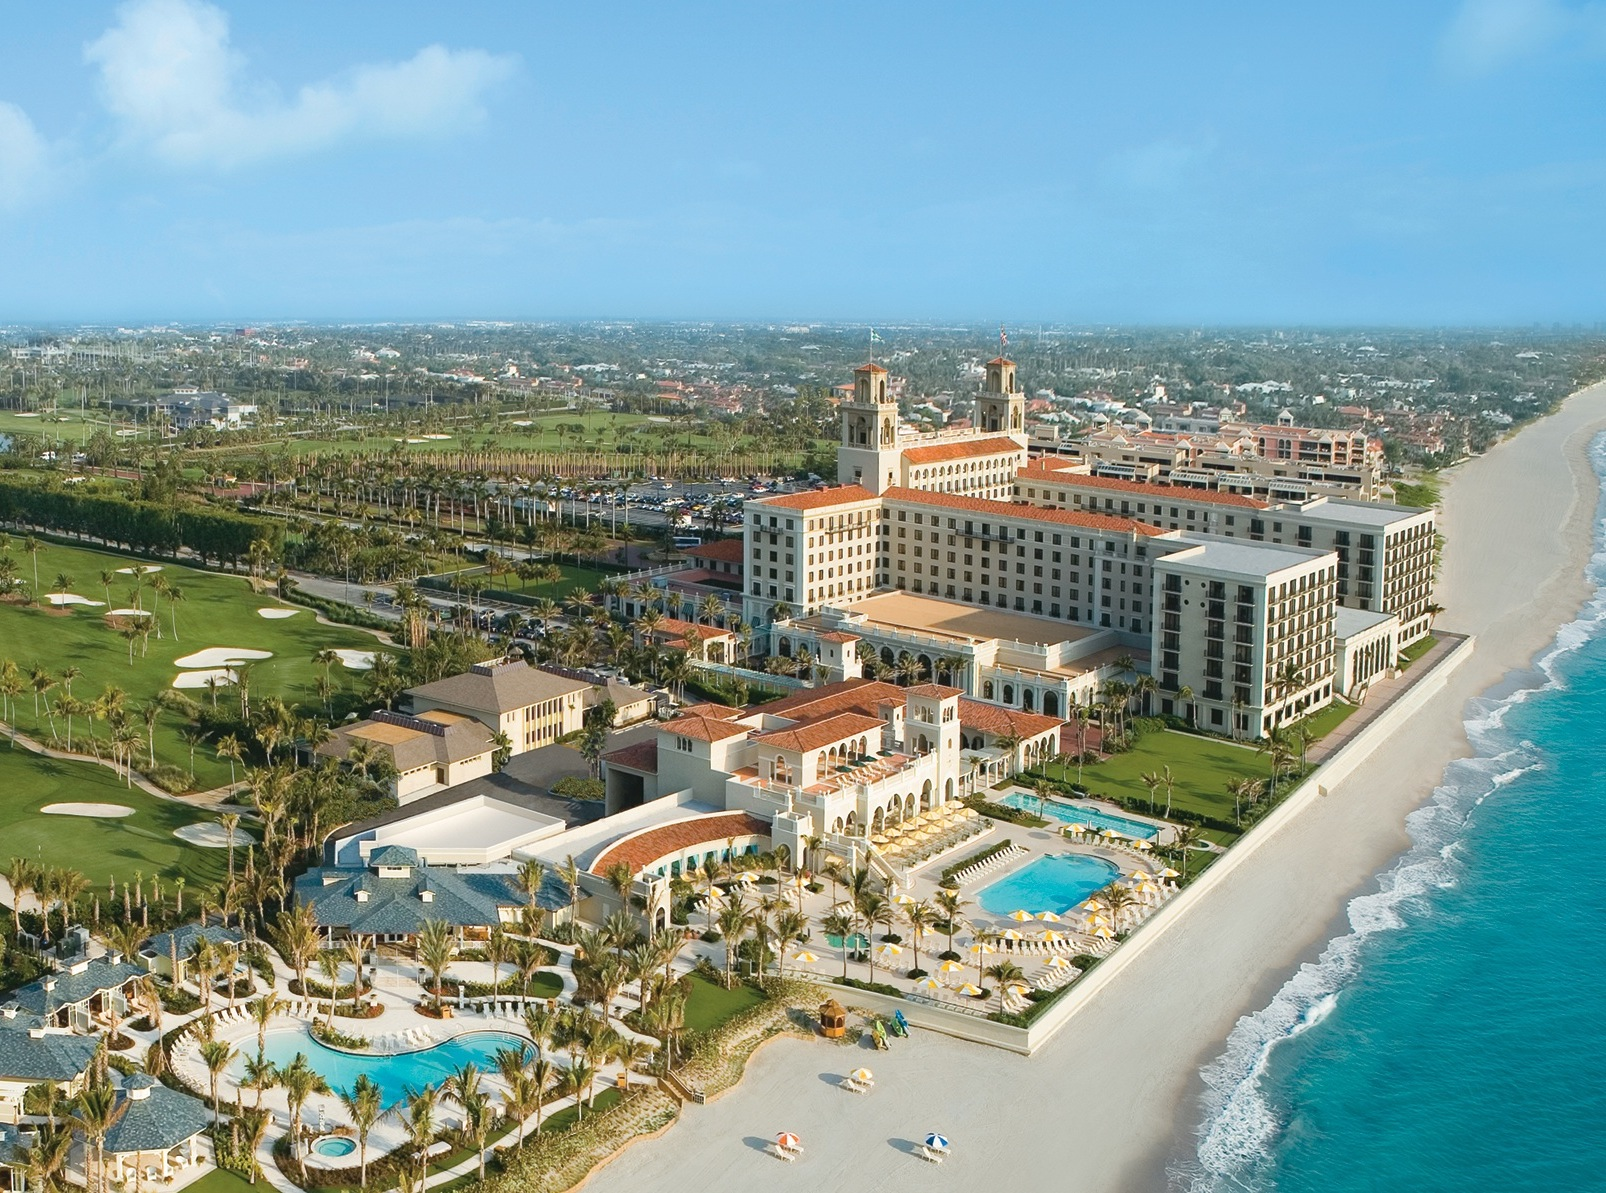 Breakers Hotel Palm Beach